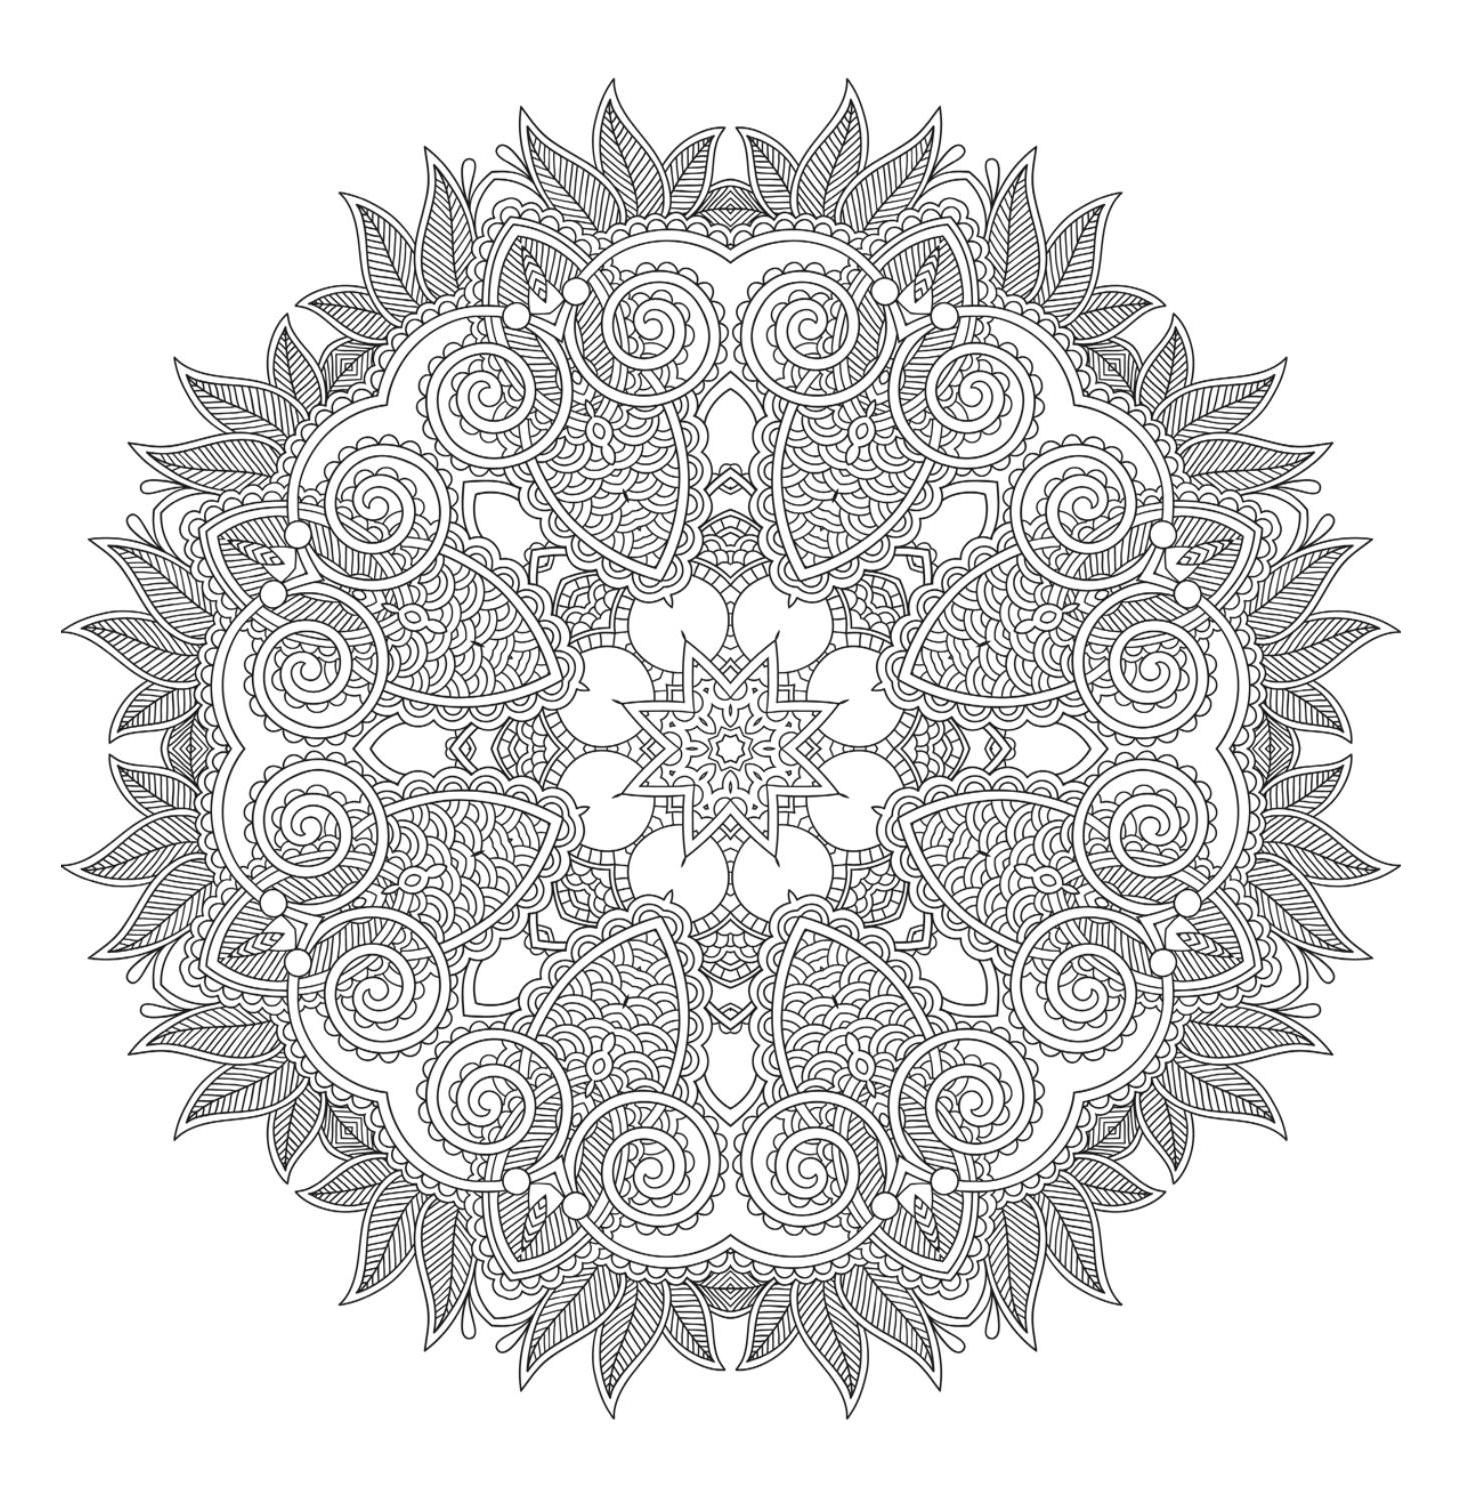 101 Mandalas The Big Coloring Book Mandala Coloring Books Coloring Books Skull Coloring Pages